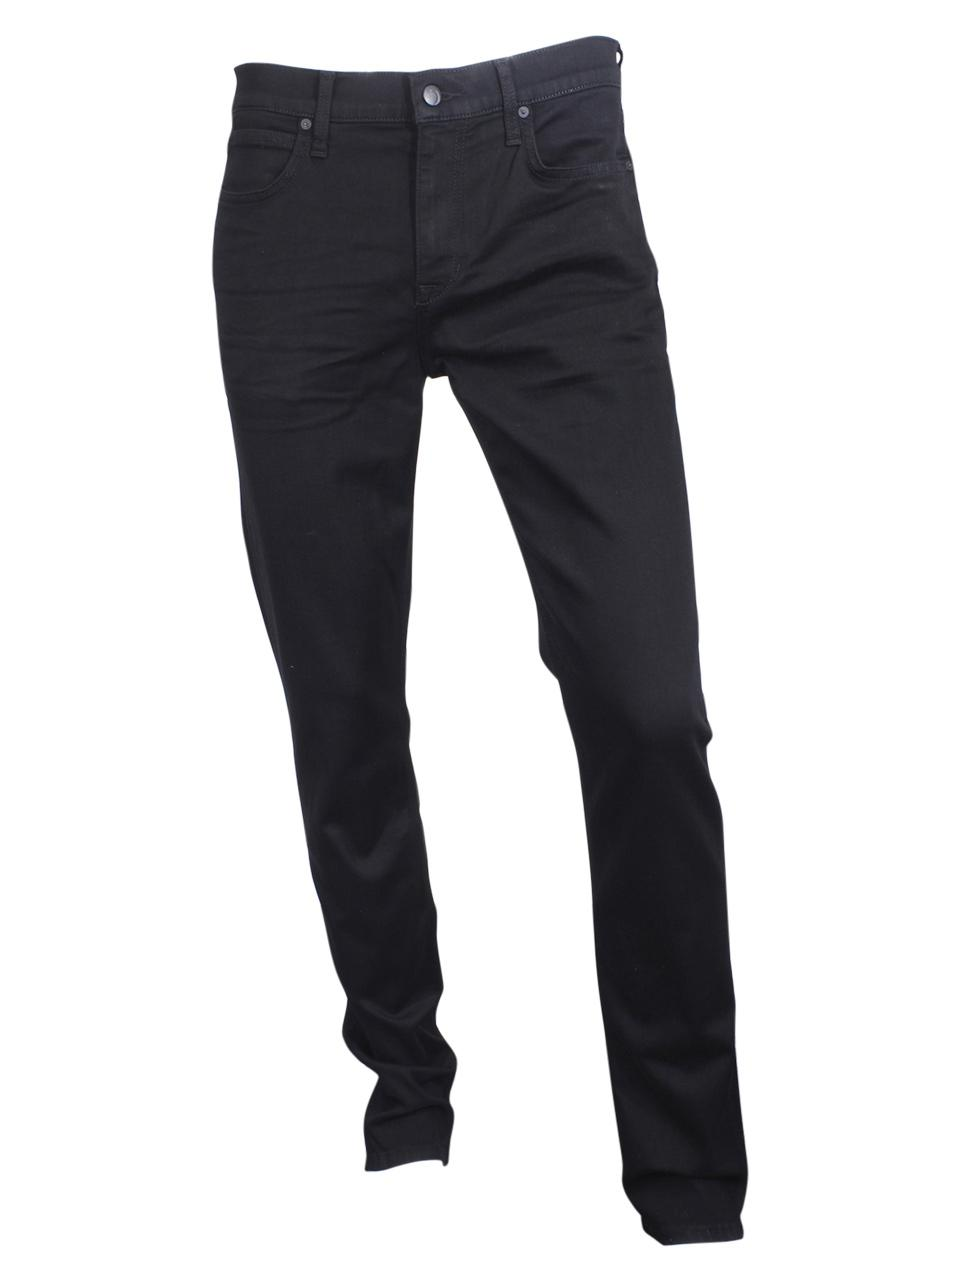 Image of Joe's Jeans Men's The Brixton Kinetic Straight + Narrow Jeans - Griffith - 33x34